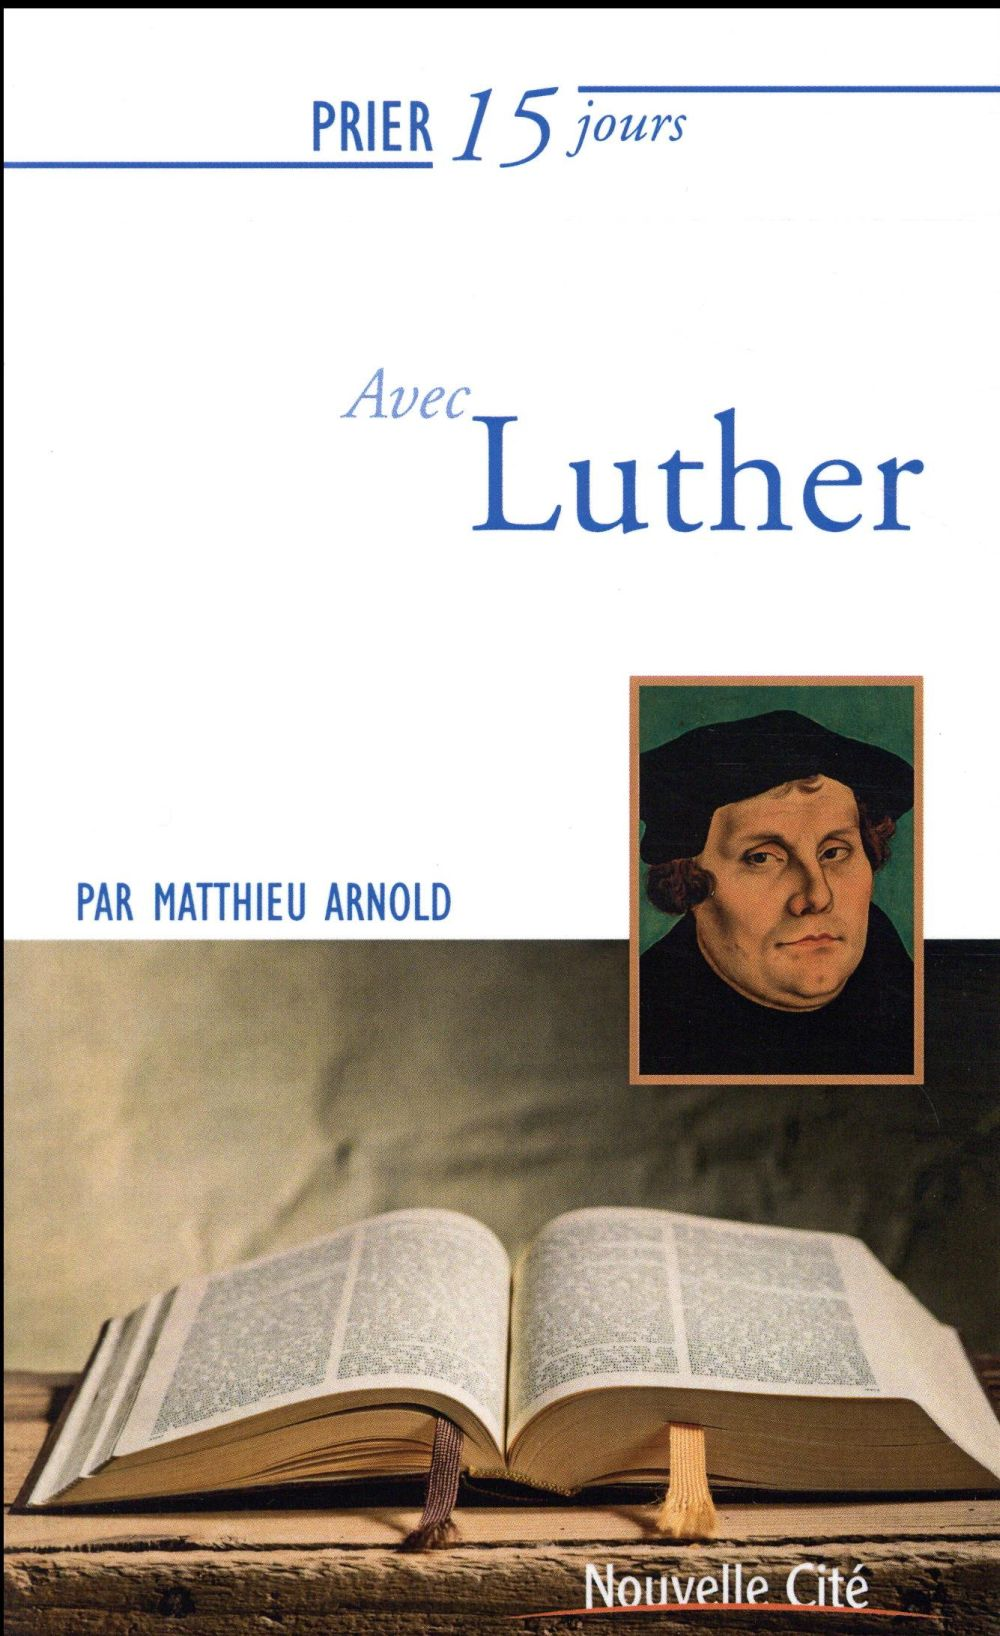 PRIER 15 JOURS AVEC LUTHER NED